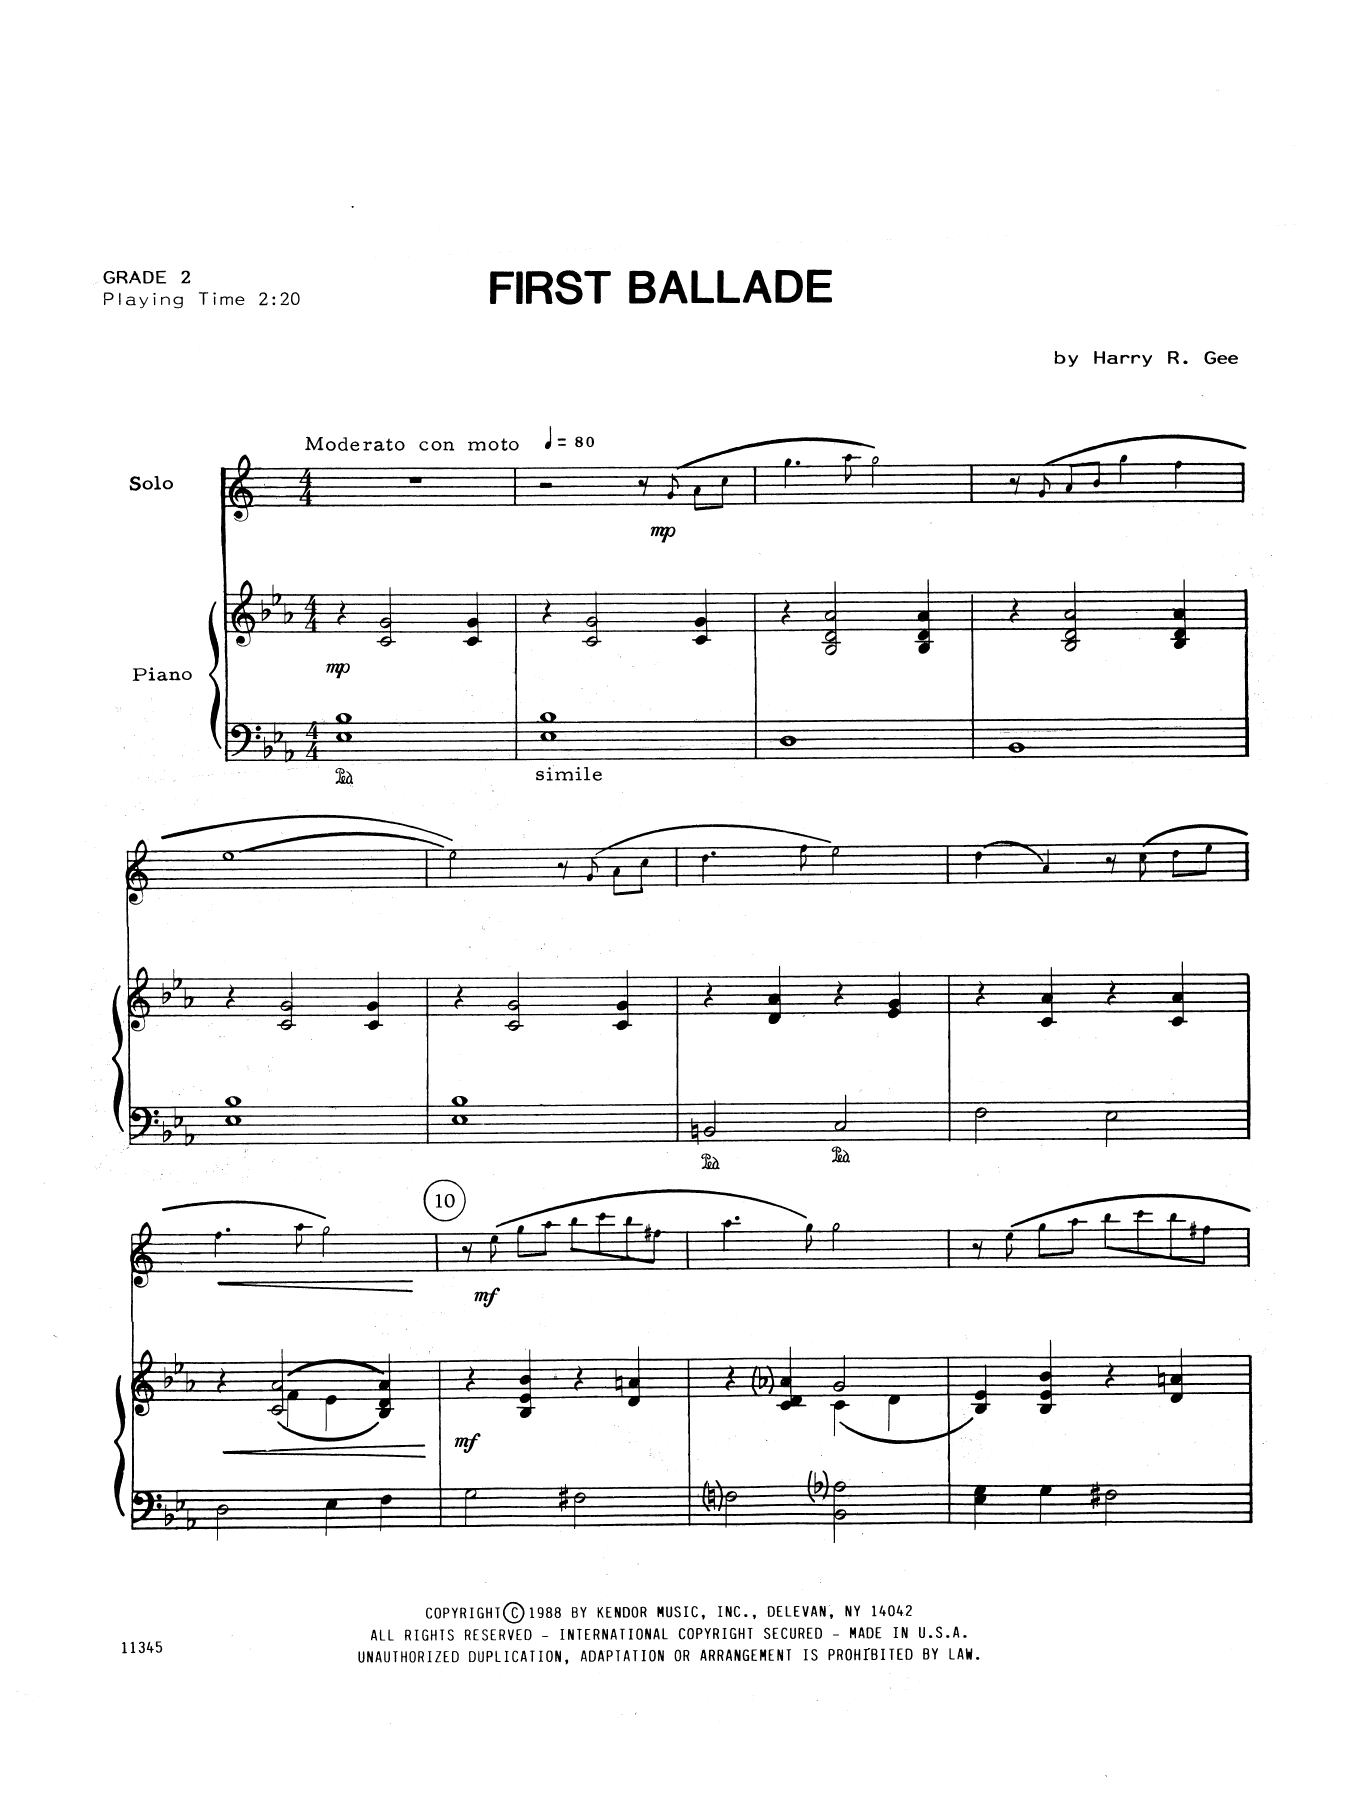 Harry Gee First Ballade - Piano Accompaniment sheet music notes and chords. Download Printable PDF.